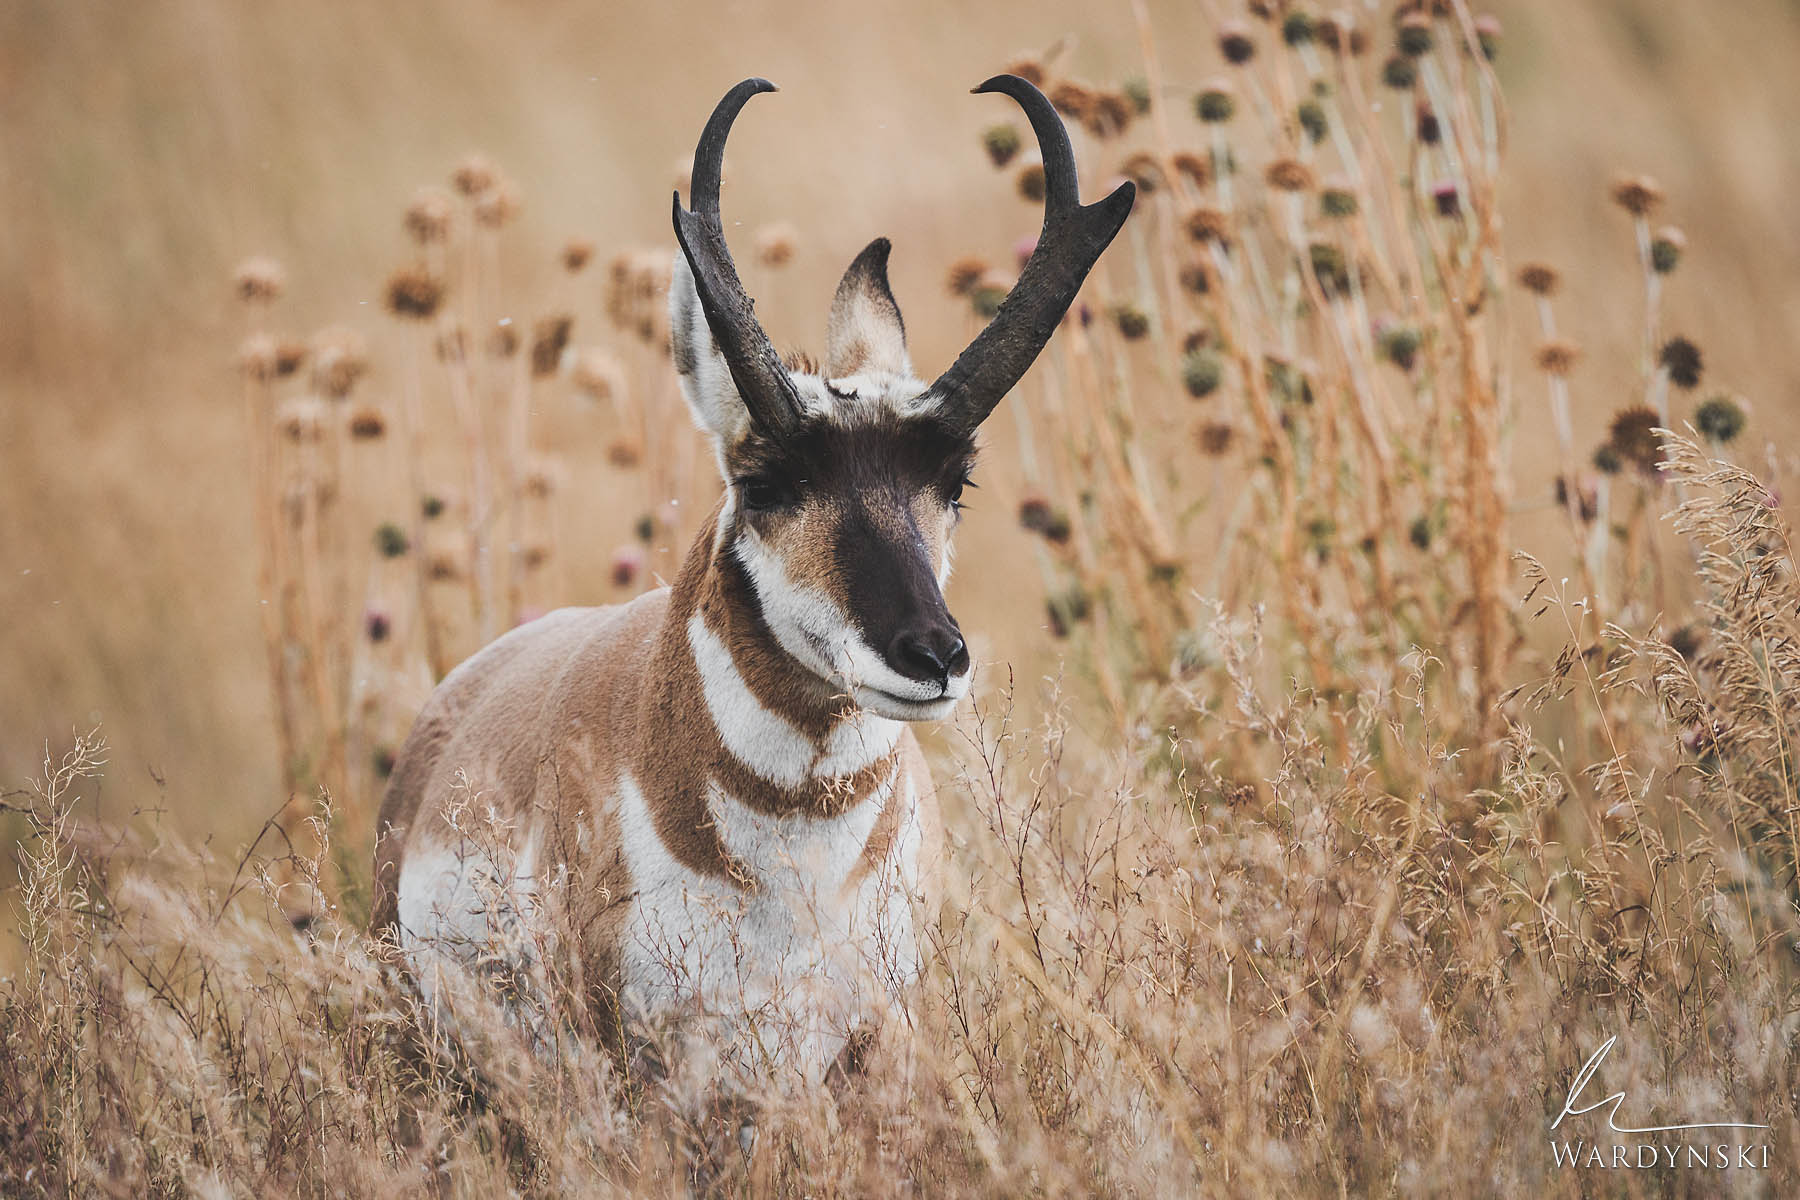 Fine Art Print | Limited Edition of 35  Pronghorns get their name from the short prong on the front of their horns. While often...